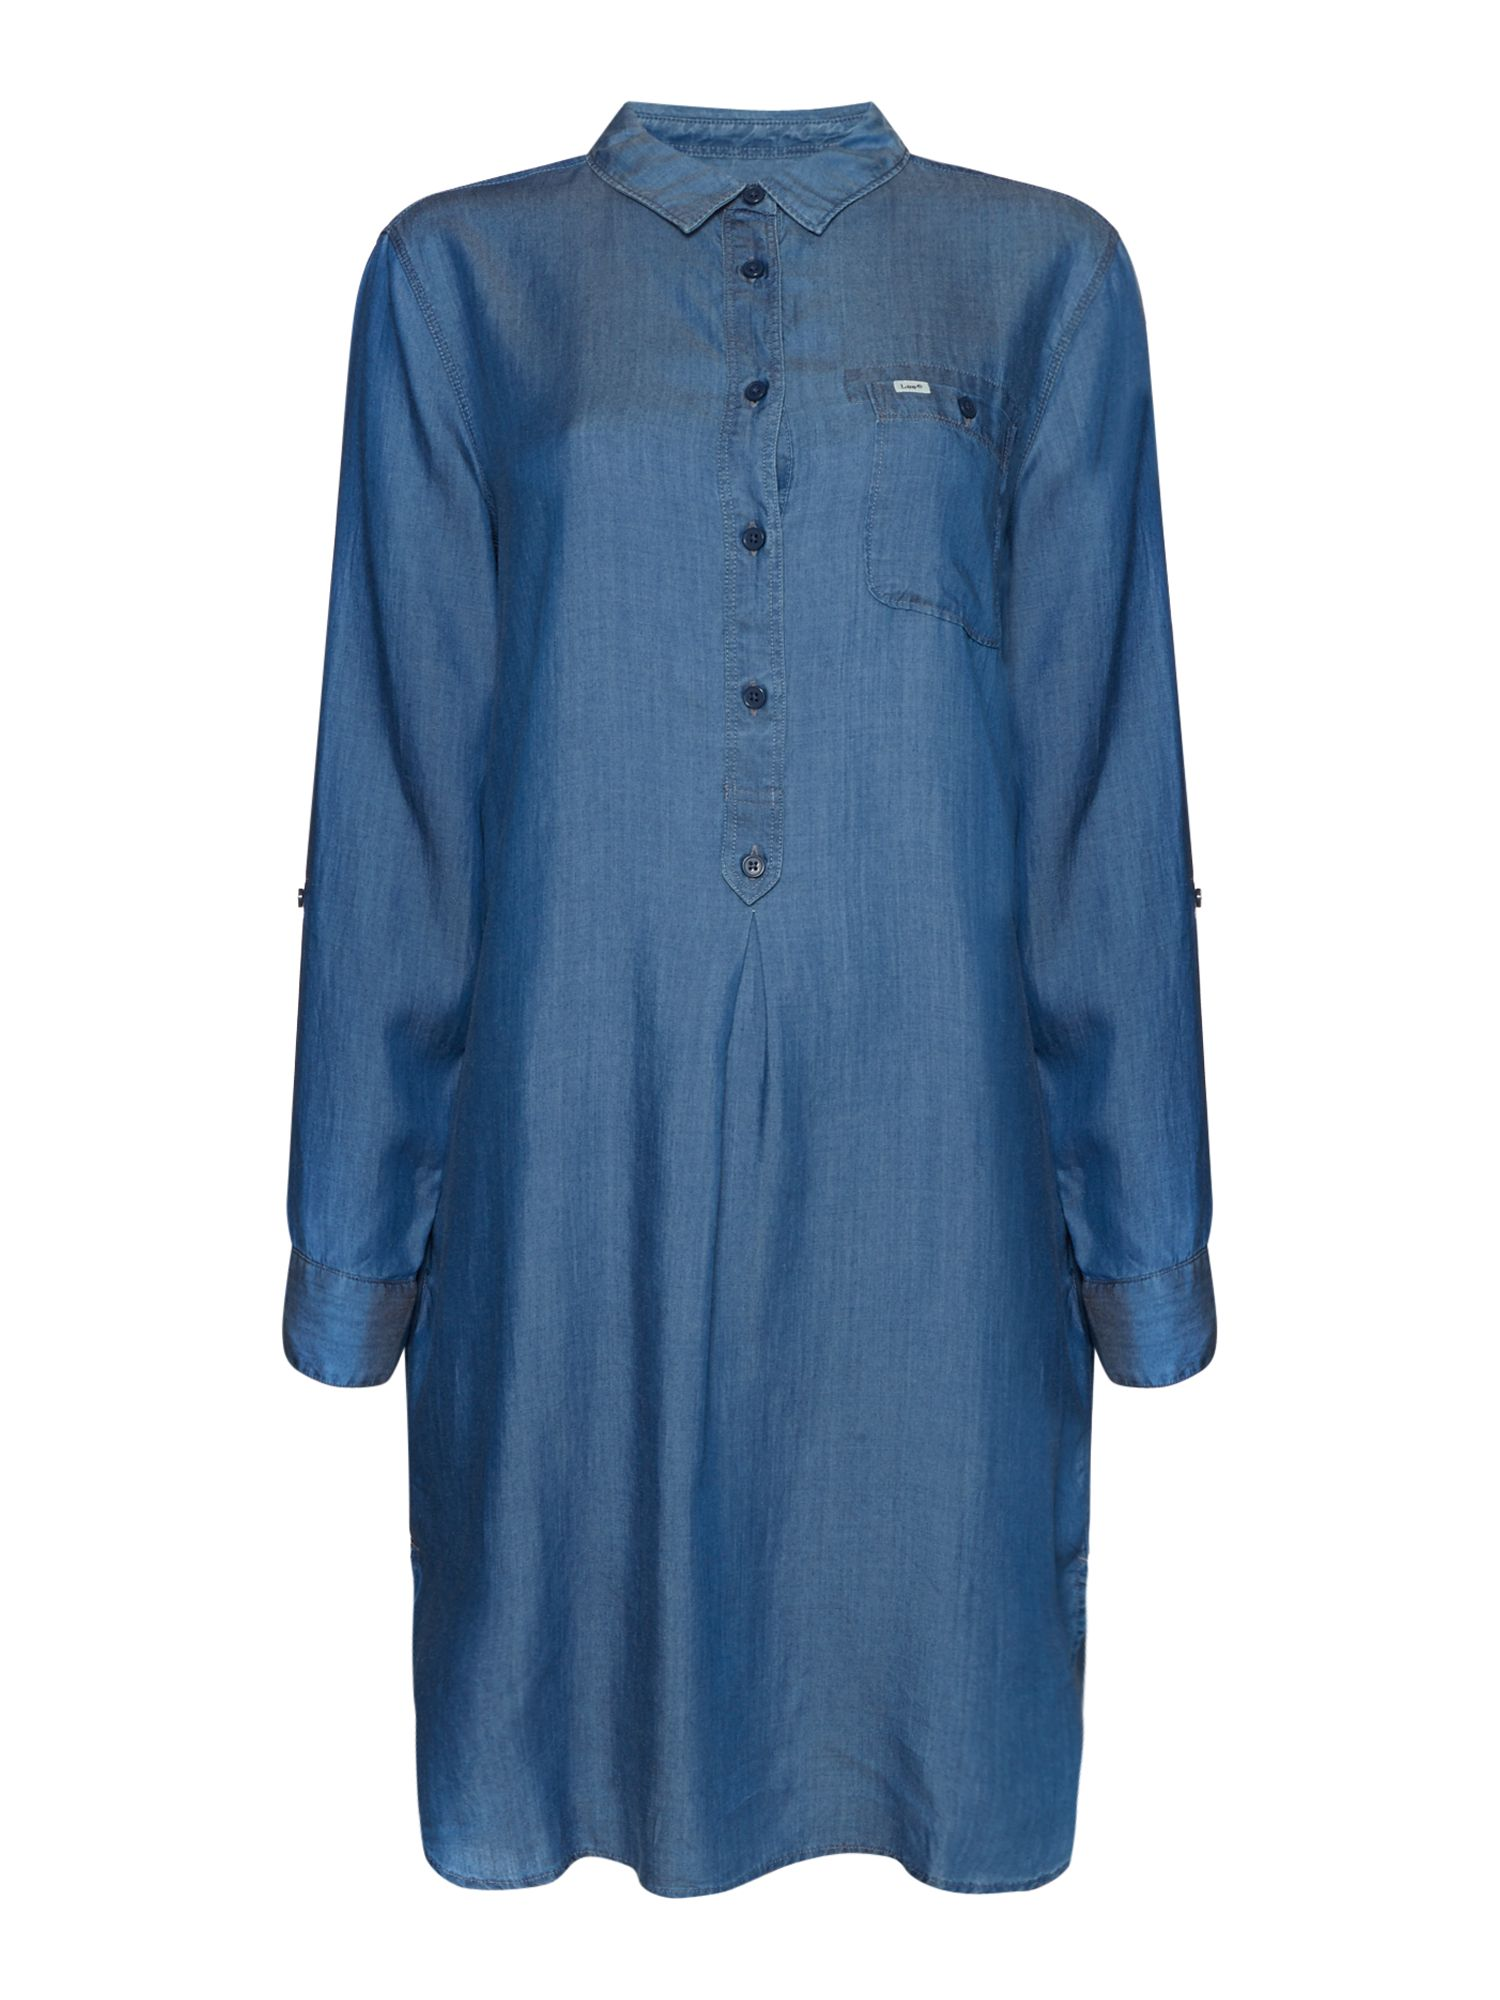 Lee Relaxed Fit Roll Sleeve Chambray Shirt Dress, Chambray